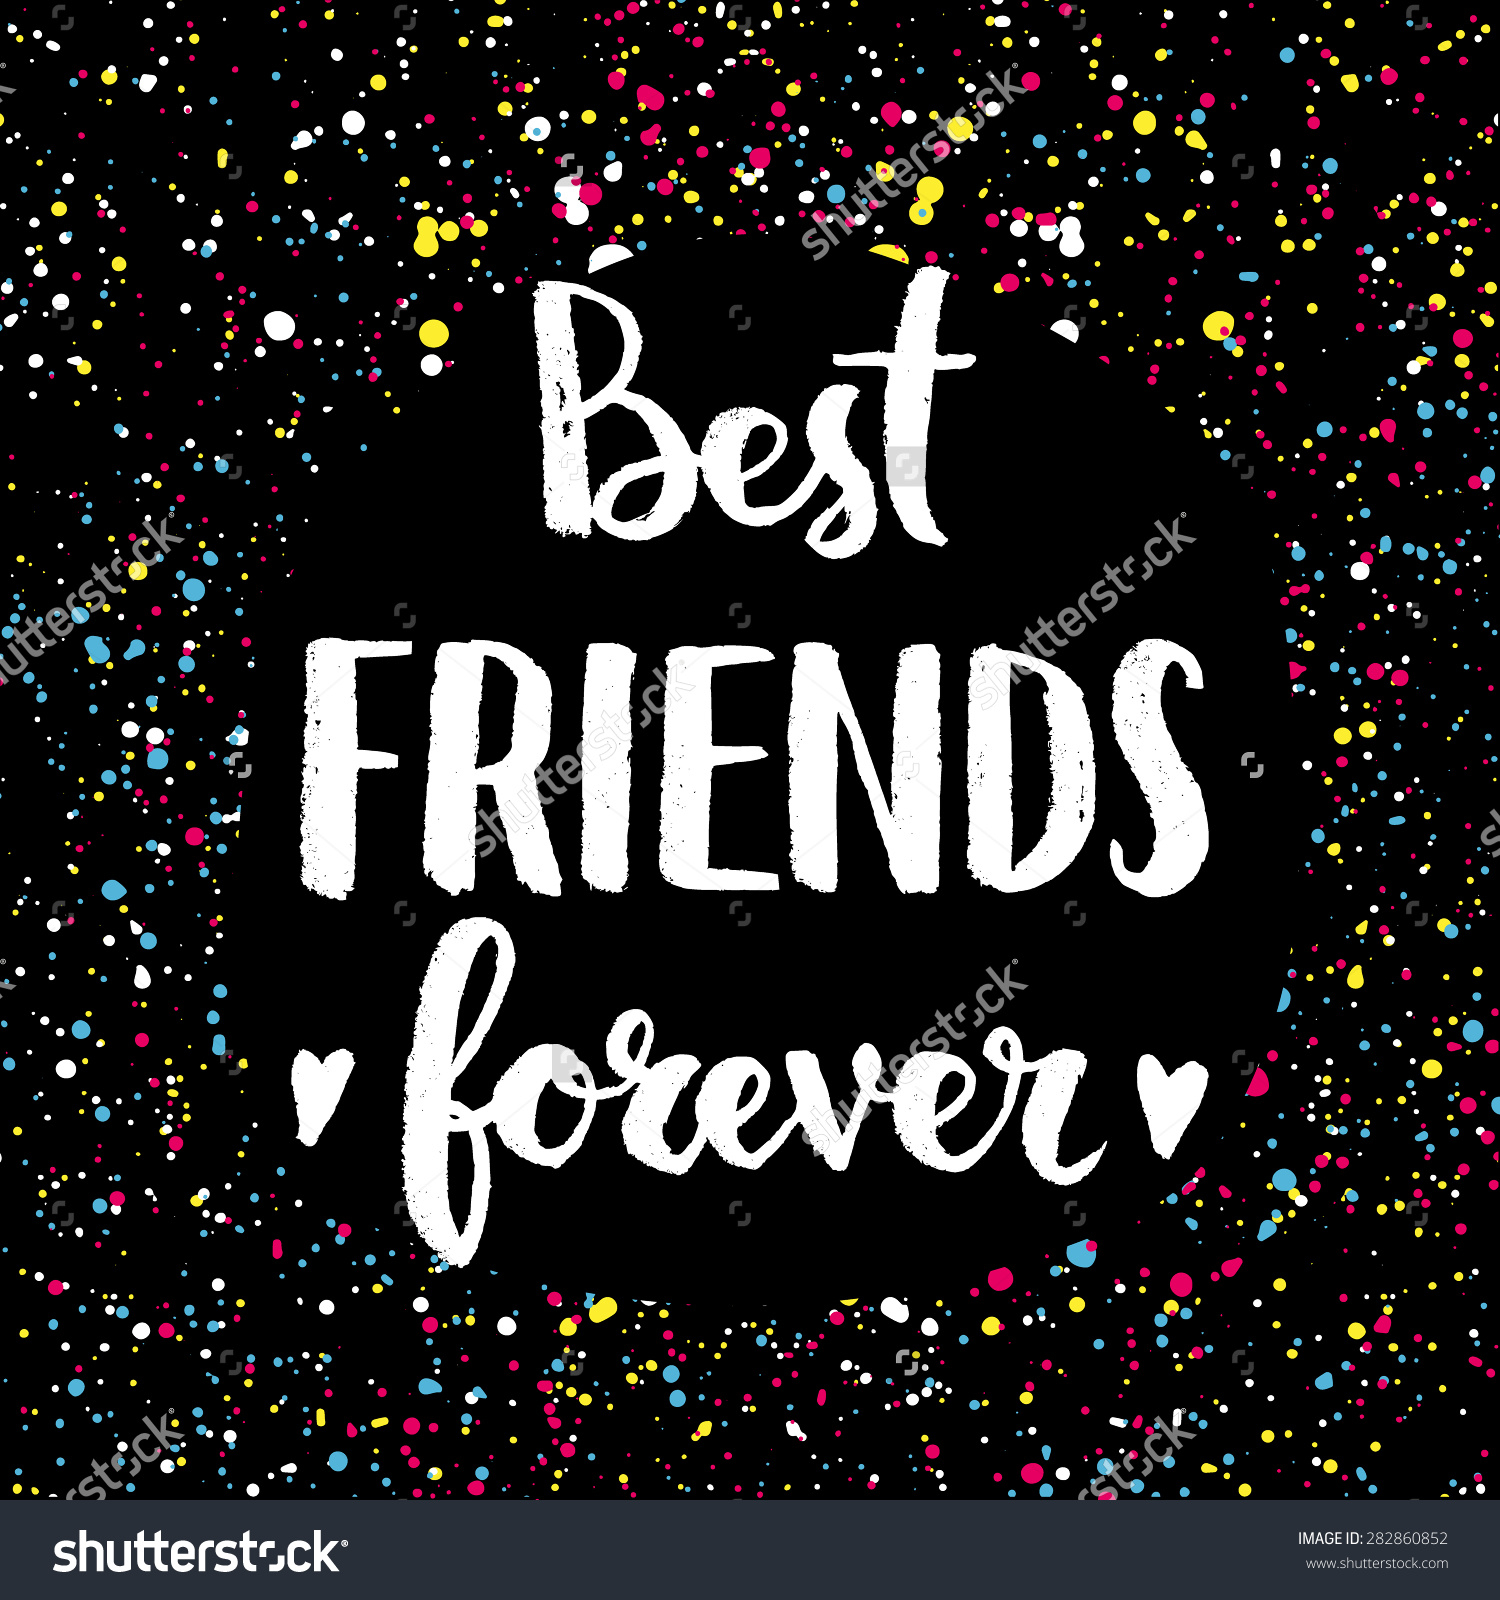 Best Friend Forever Sayings wwwgalleryhipcom   The 1500x1600